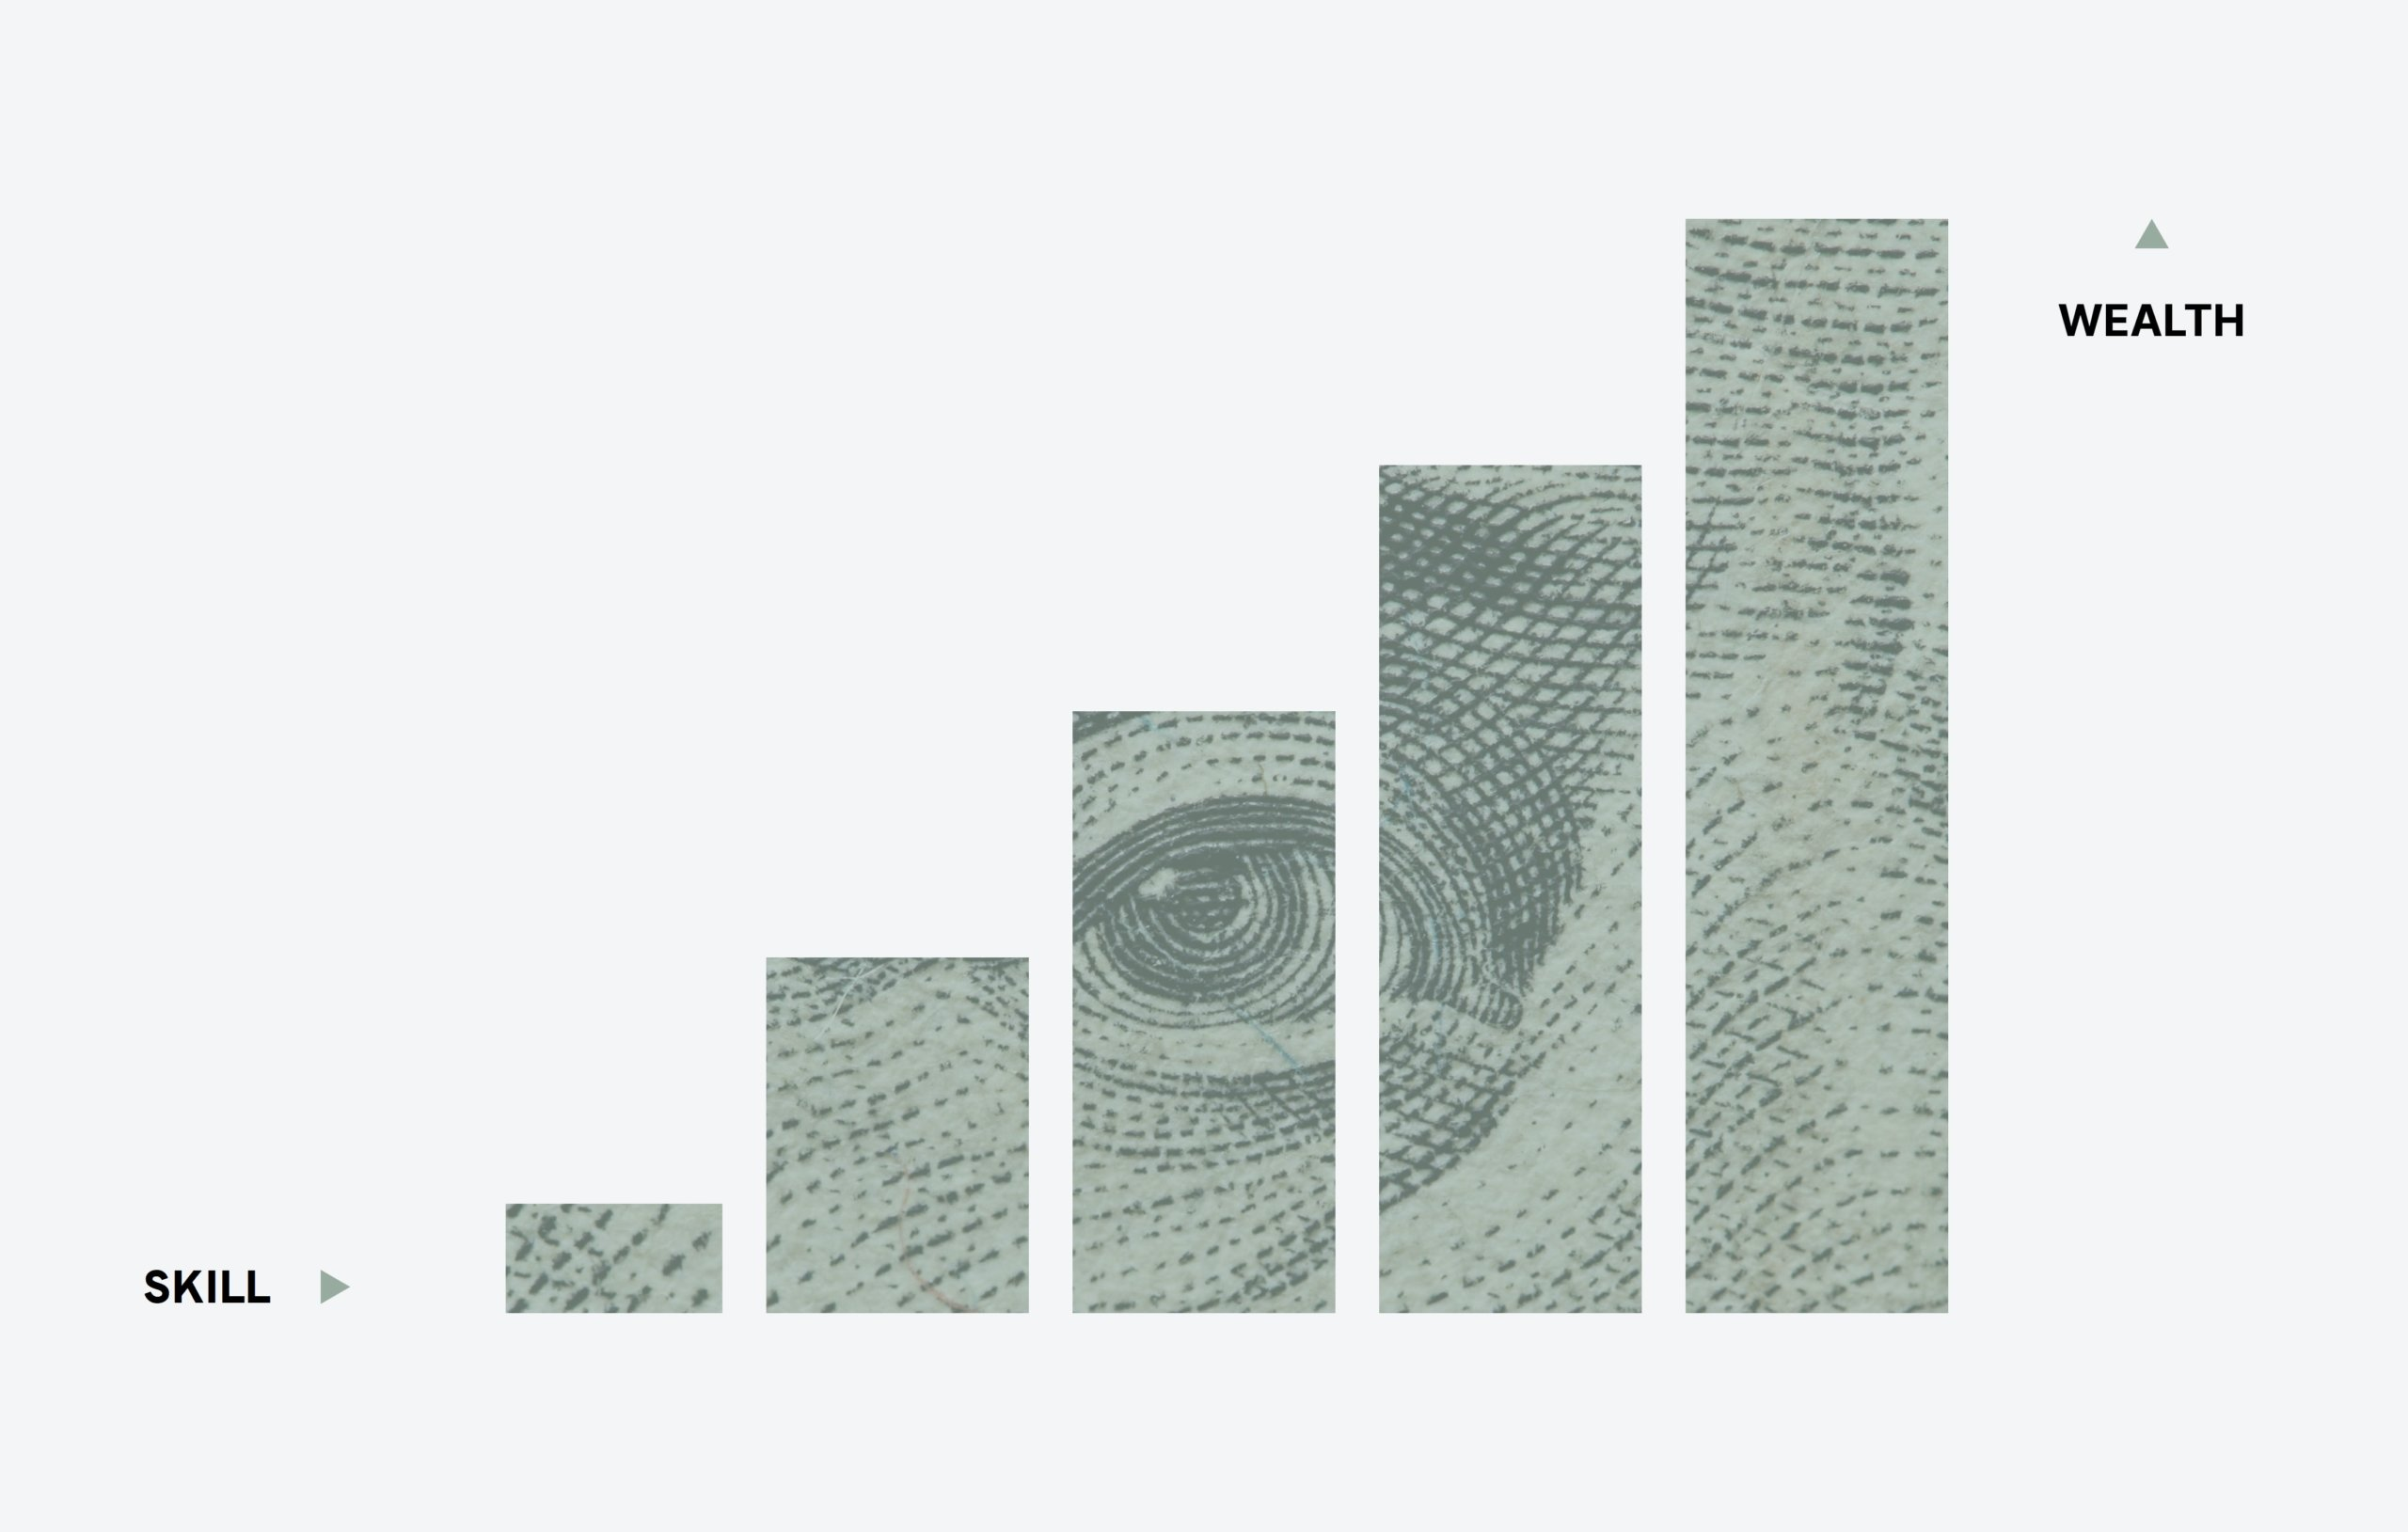 Are CEOs paid too much?